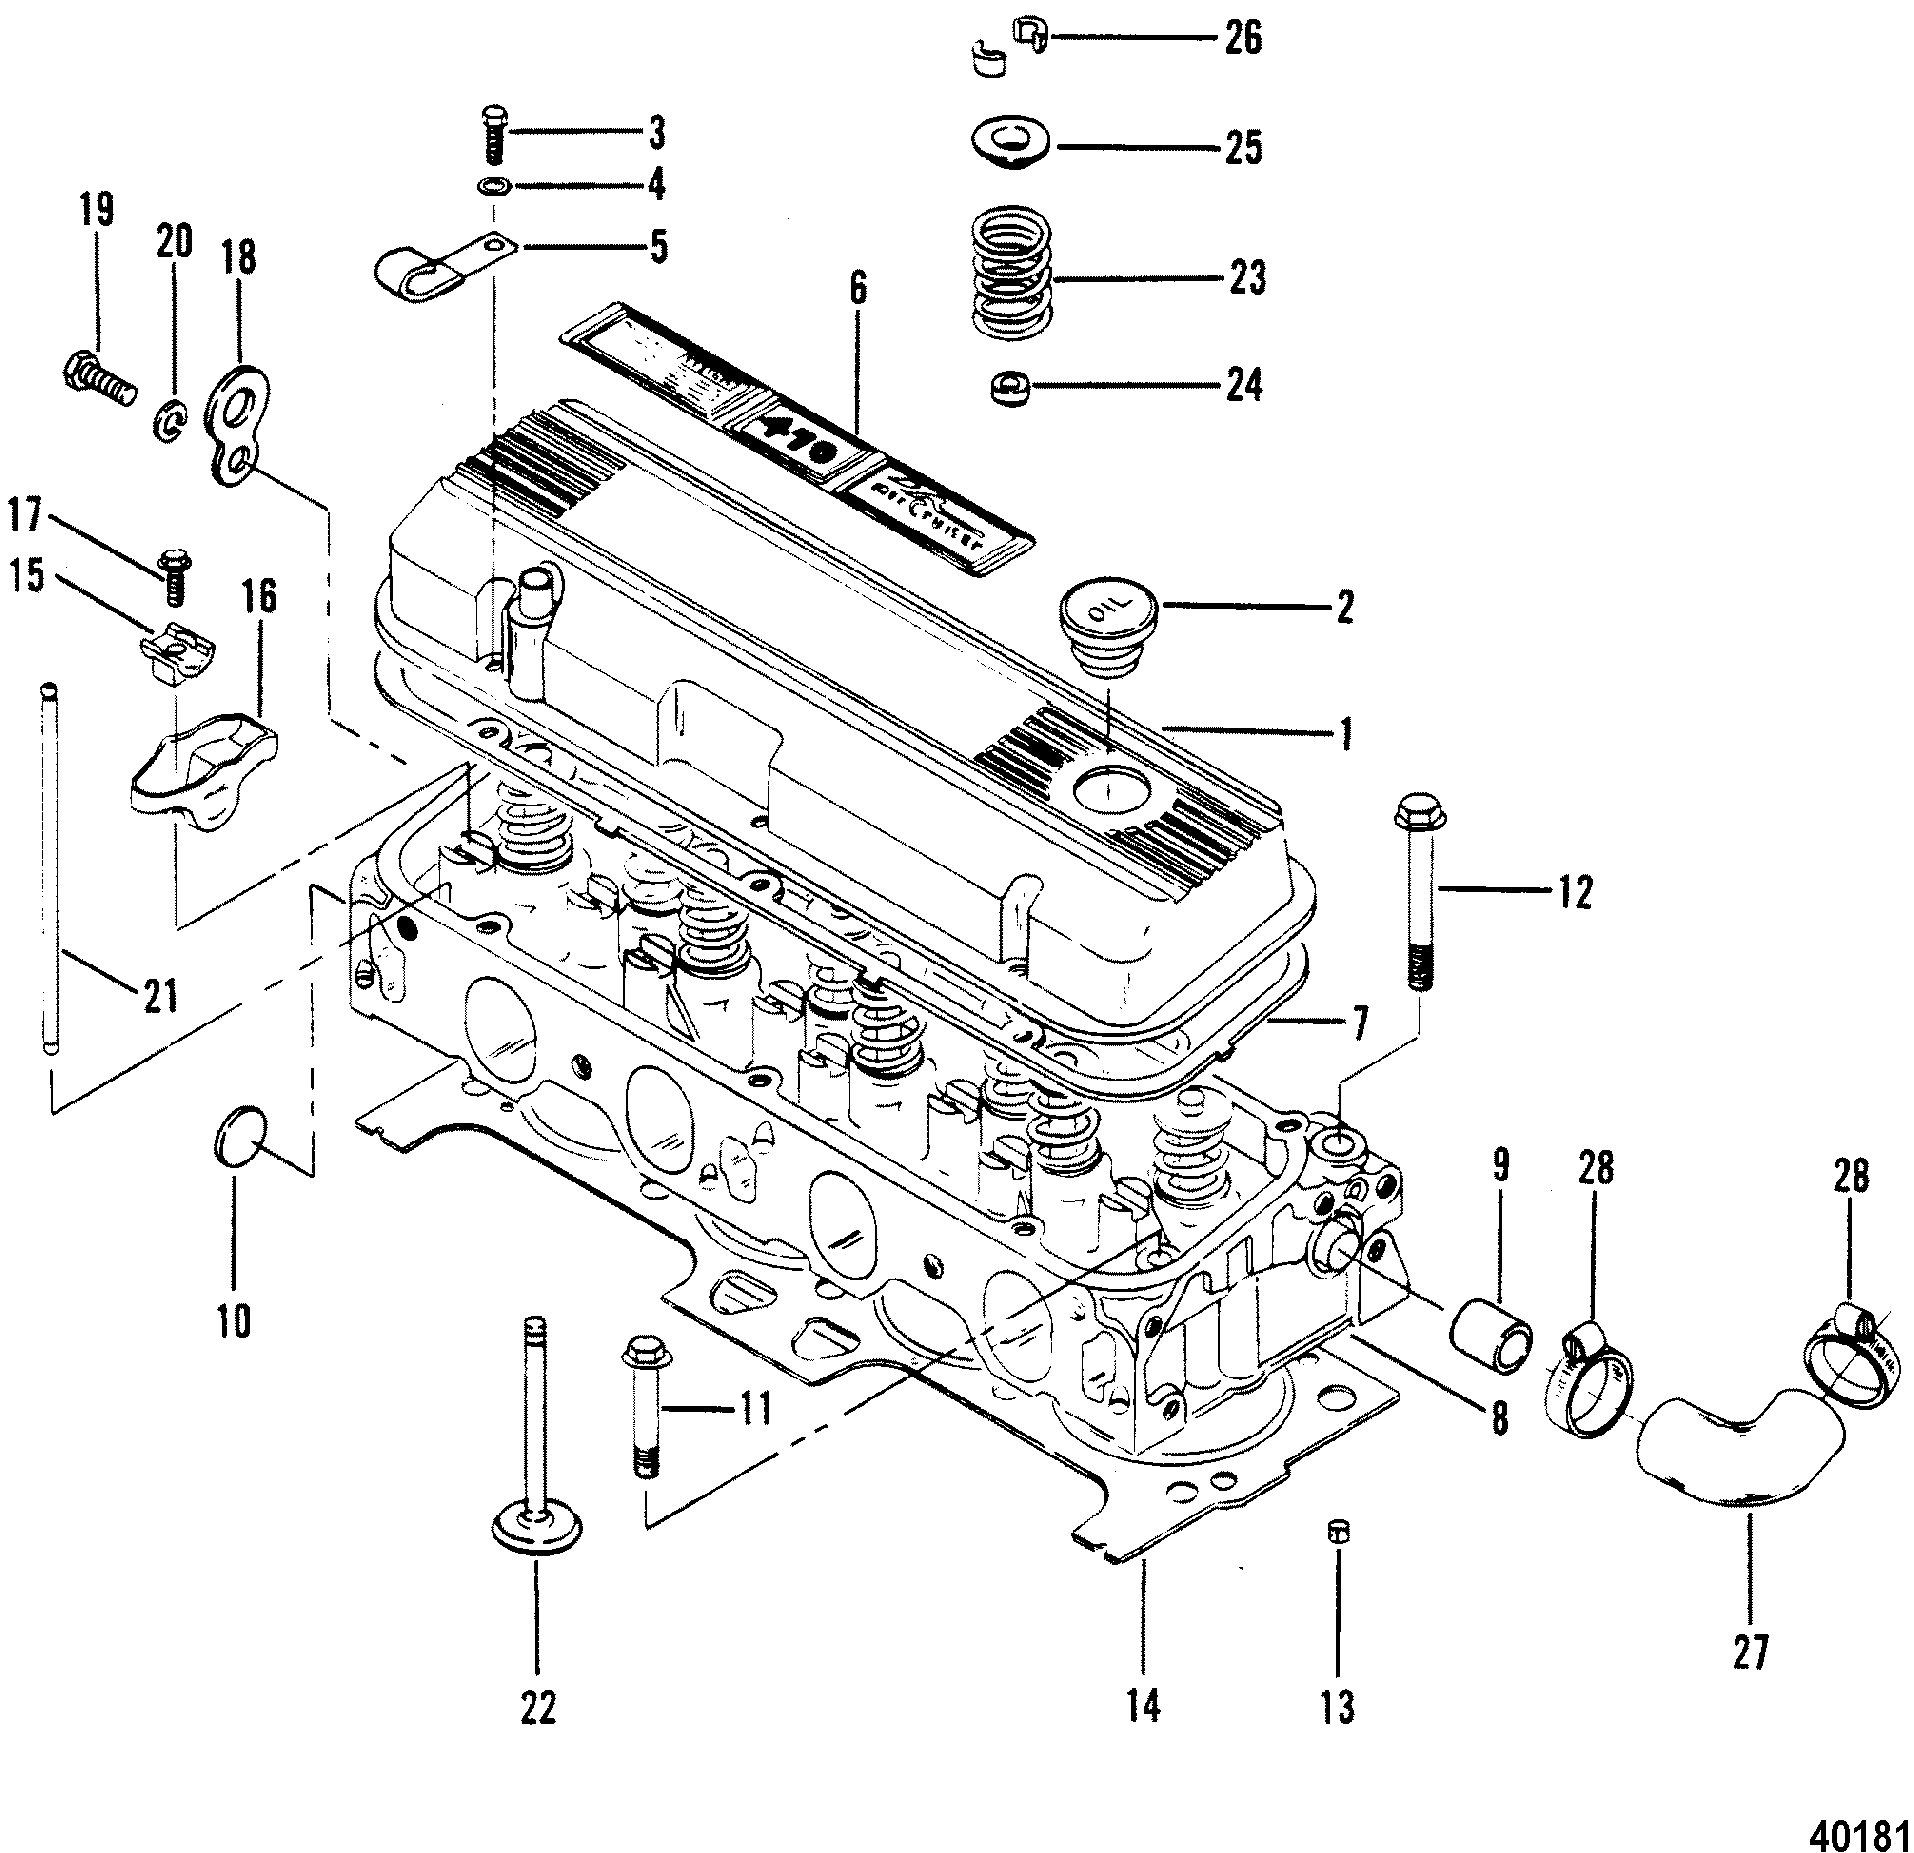 Tr6 Big Picture Engine Diagram as well Bb Bind Wire Diagrams also H22a4 Wiring Harness Diagram moreover Mgb Alternator Wiring Diagram further Showthread. on mgb alternator conversion